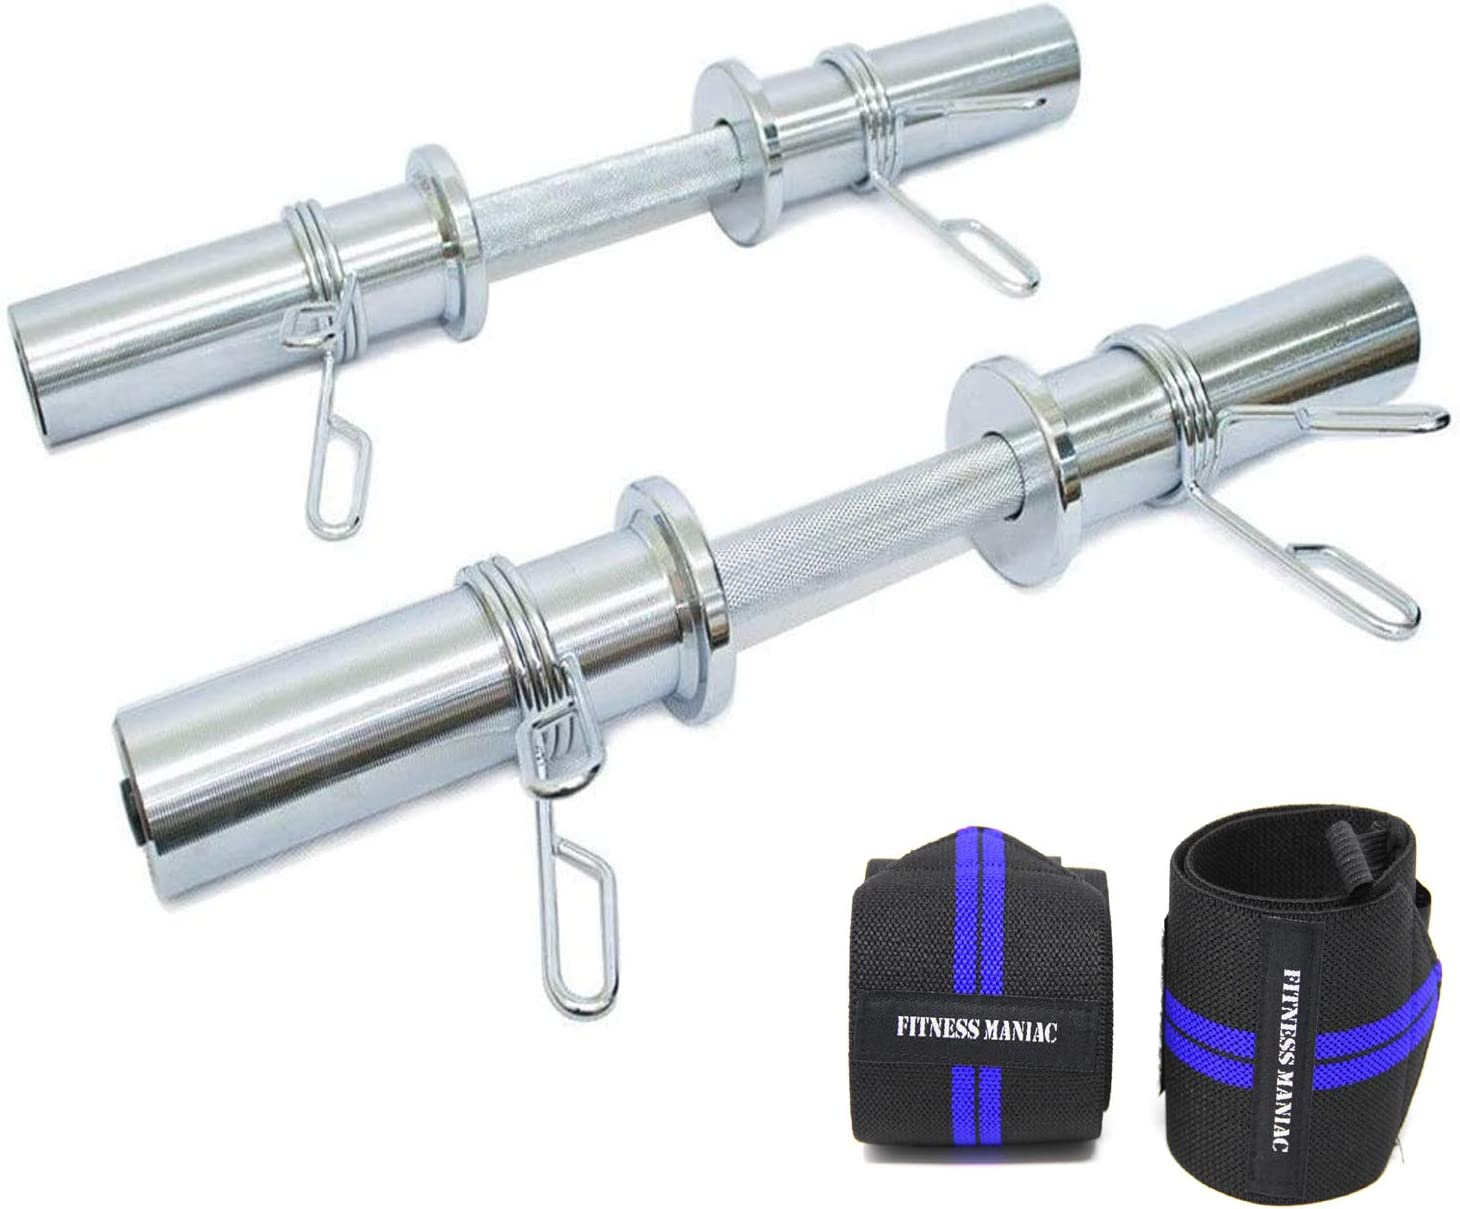 FITNESS MANIAC Heavy Duty Barbell 20 Inch Olympic Dumbbell Handle Pair Solid Steel Two Handles